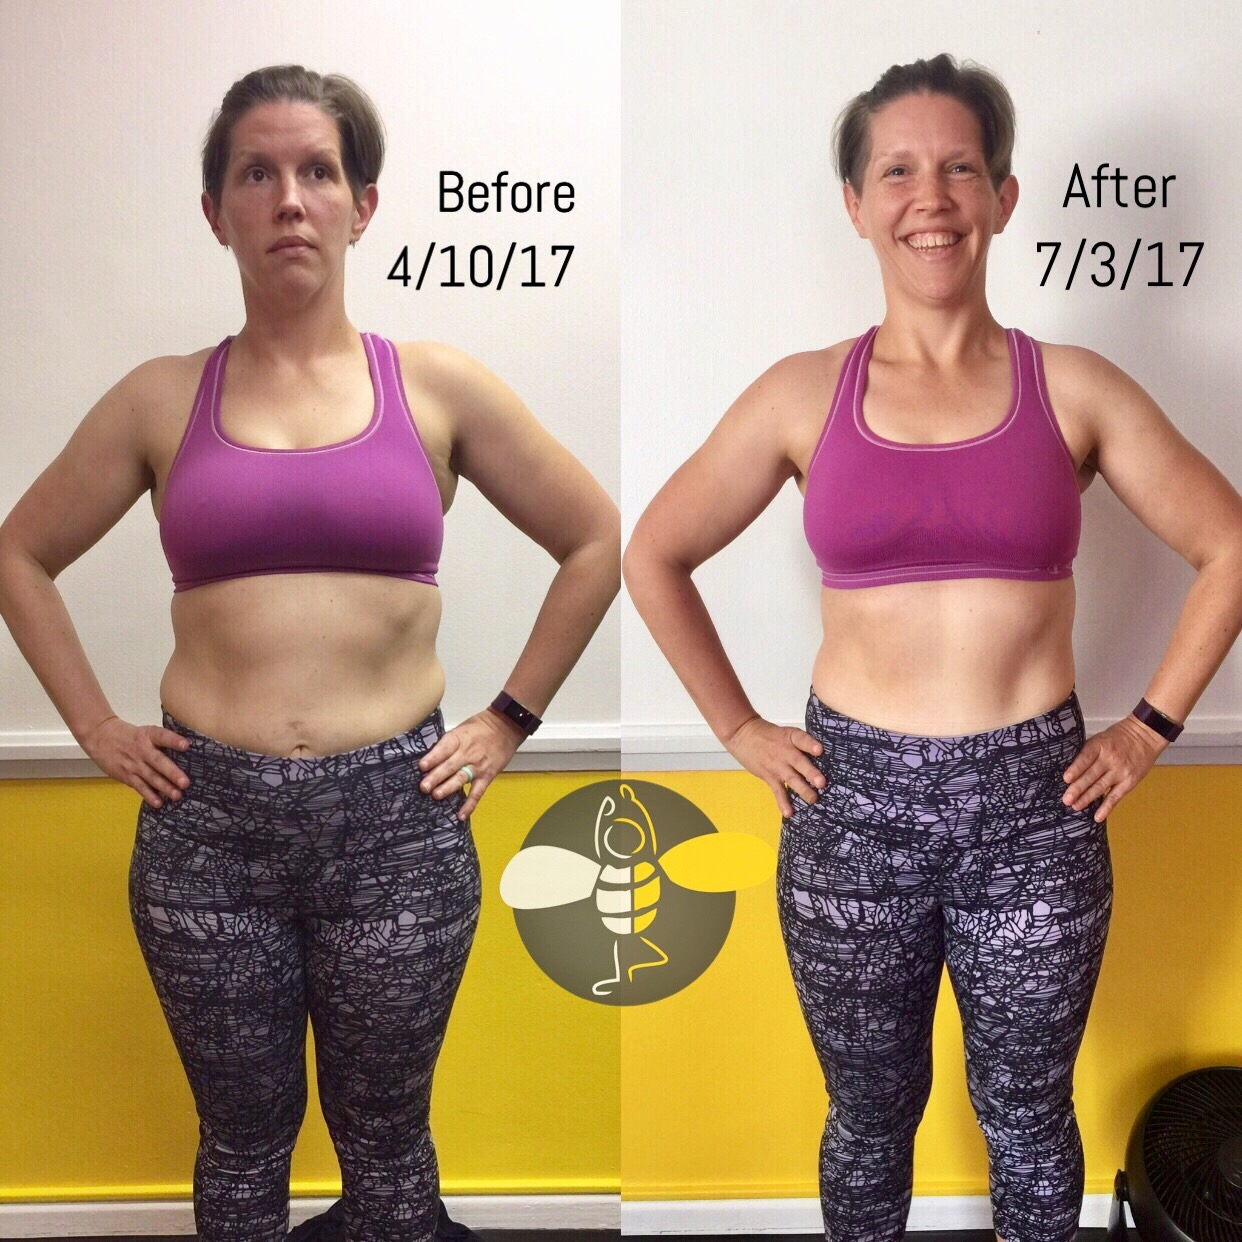 In Our Sessions Ill Help You Discover Small Changes Can Make To Get Amazing Transformations So Feel Better Your Body Health